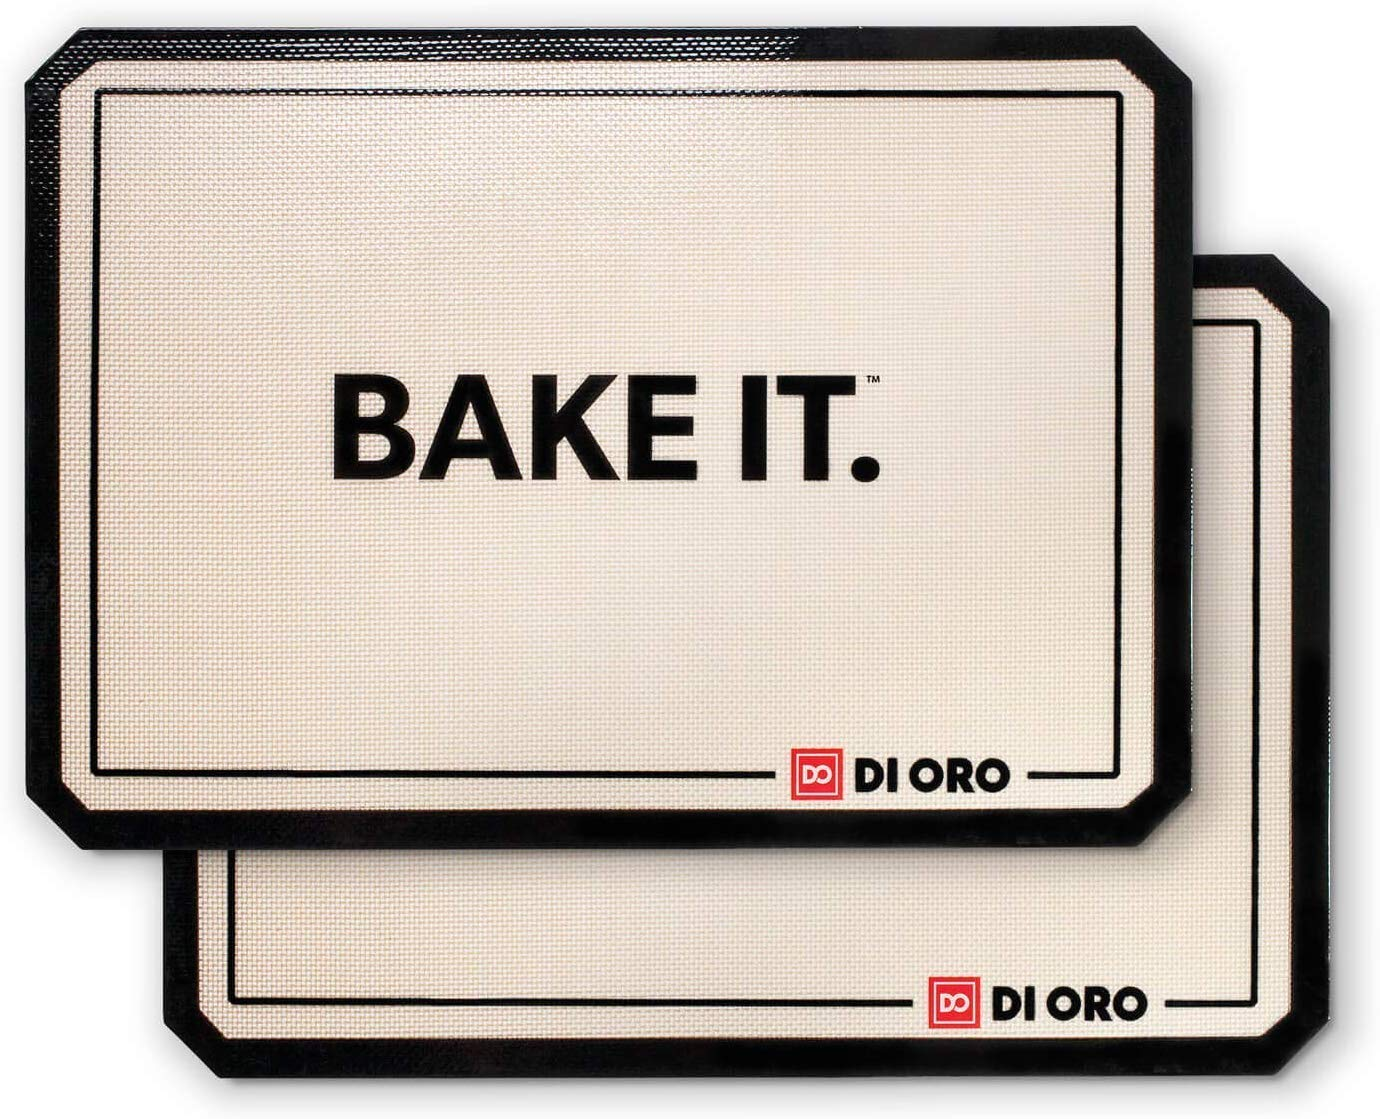 """Di Oro Pro Grade Silicone Baking Mats - 480° Heat Resistant Non Stick Baking Liners - 16 1/2""""× 11 5/8"""" Half Sheet - Dishwasher Safe, Easily Cleanable - BPA Free and LFGB Certified Silicone - 2-Pack"""